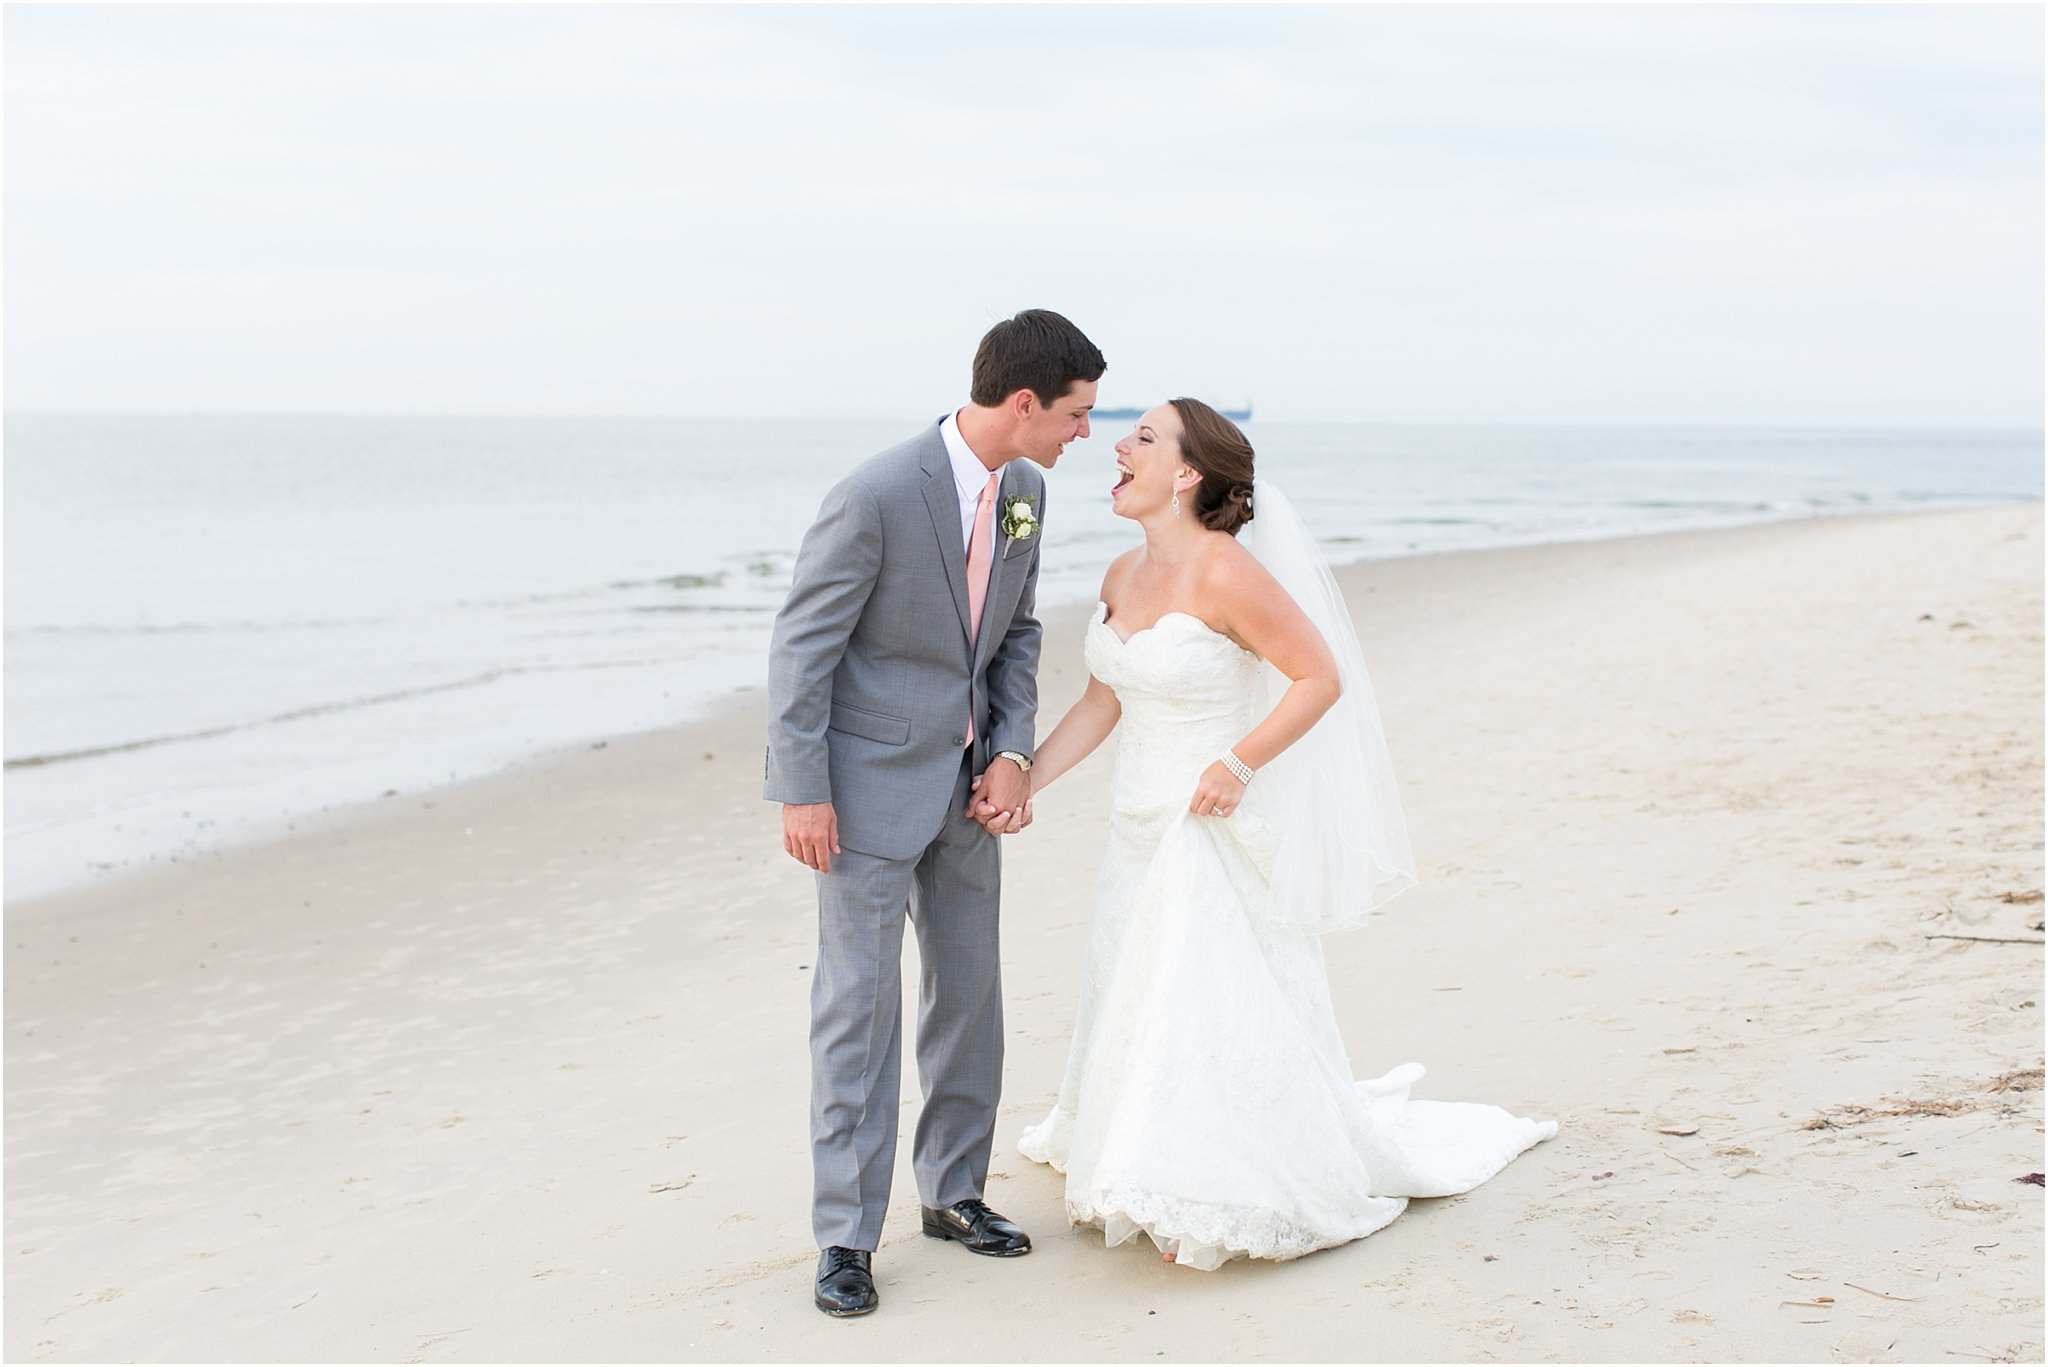 jessica_ryan_photography_wedding_photography_virginiabeach_virginia_candid_authentic_wedding_portraits_marina_shores_yacht_club_chesapeake_bay_1880